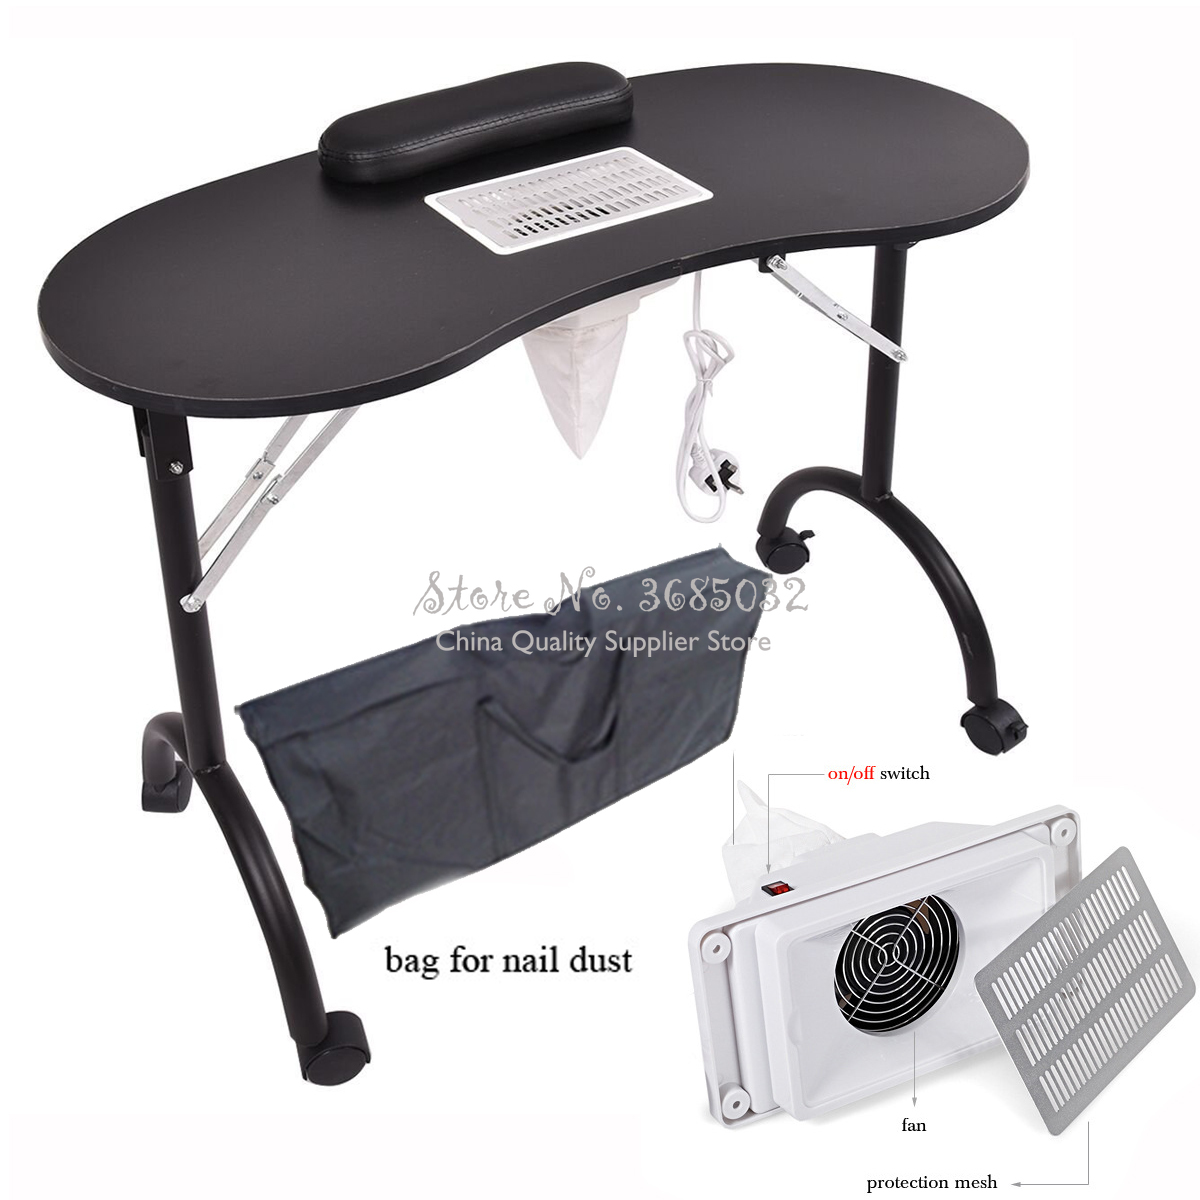 29%,Manicure Desk With Vacuum Cleaner Nail Art Table Spa Beauty Salon Equipment For Nails Foldable Nail Table+Storage Bag